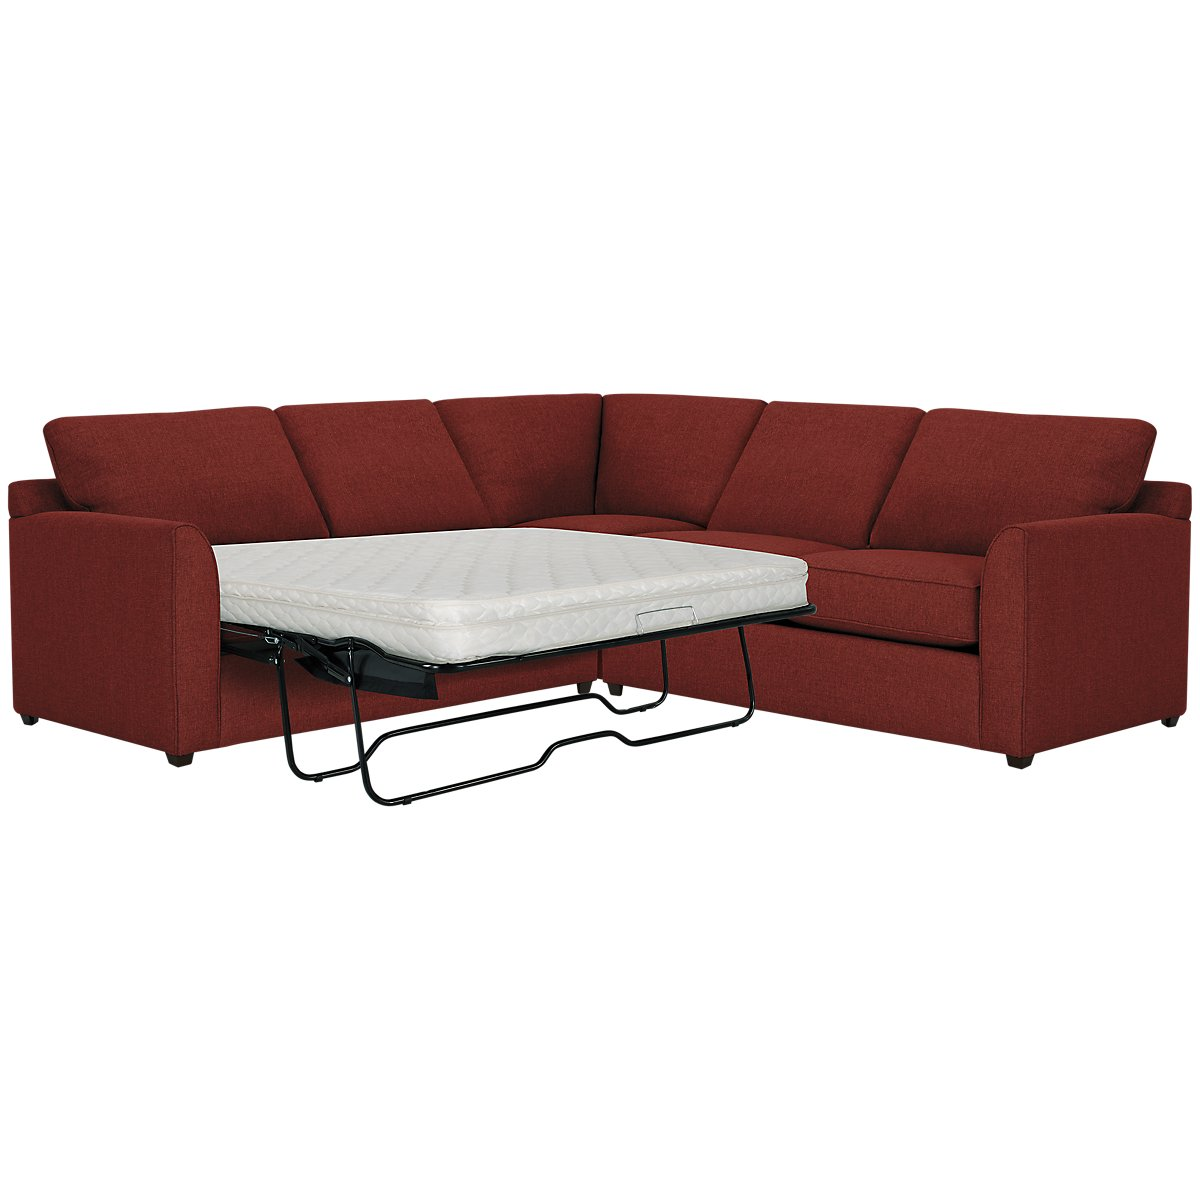 Asheville Red Fabric Two-Arm Left Innerspring Sleeper Sectional